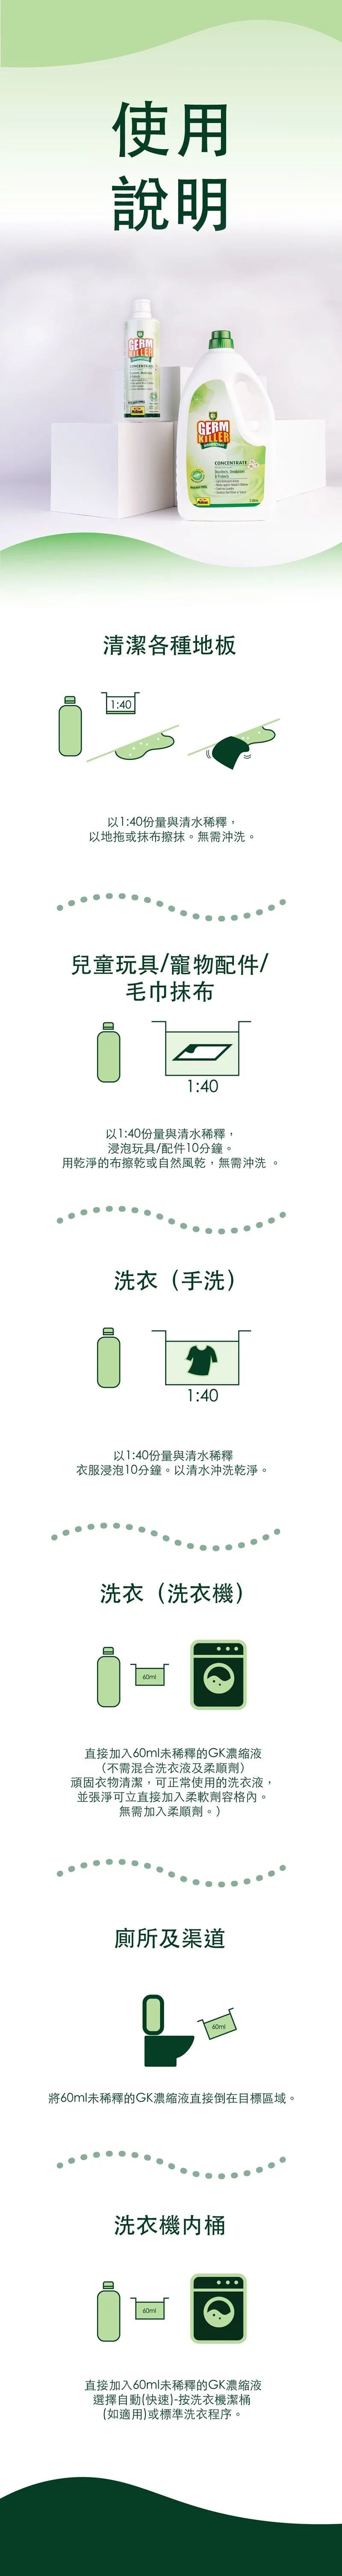 Jetour Mall 淨可立殺菌清潔濃縮液 Germ Killer Concentrate 使用方法 Usage Instructions